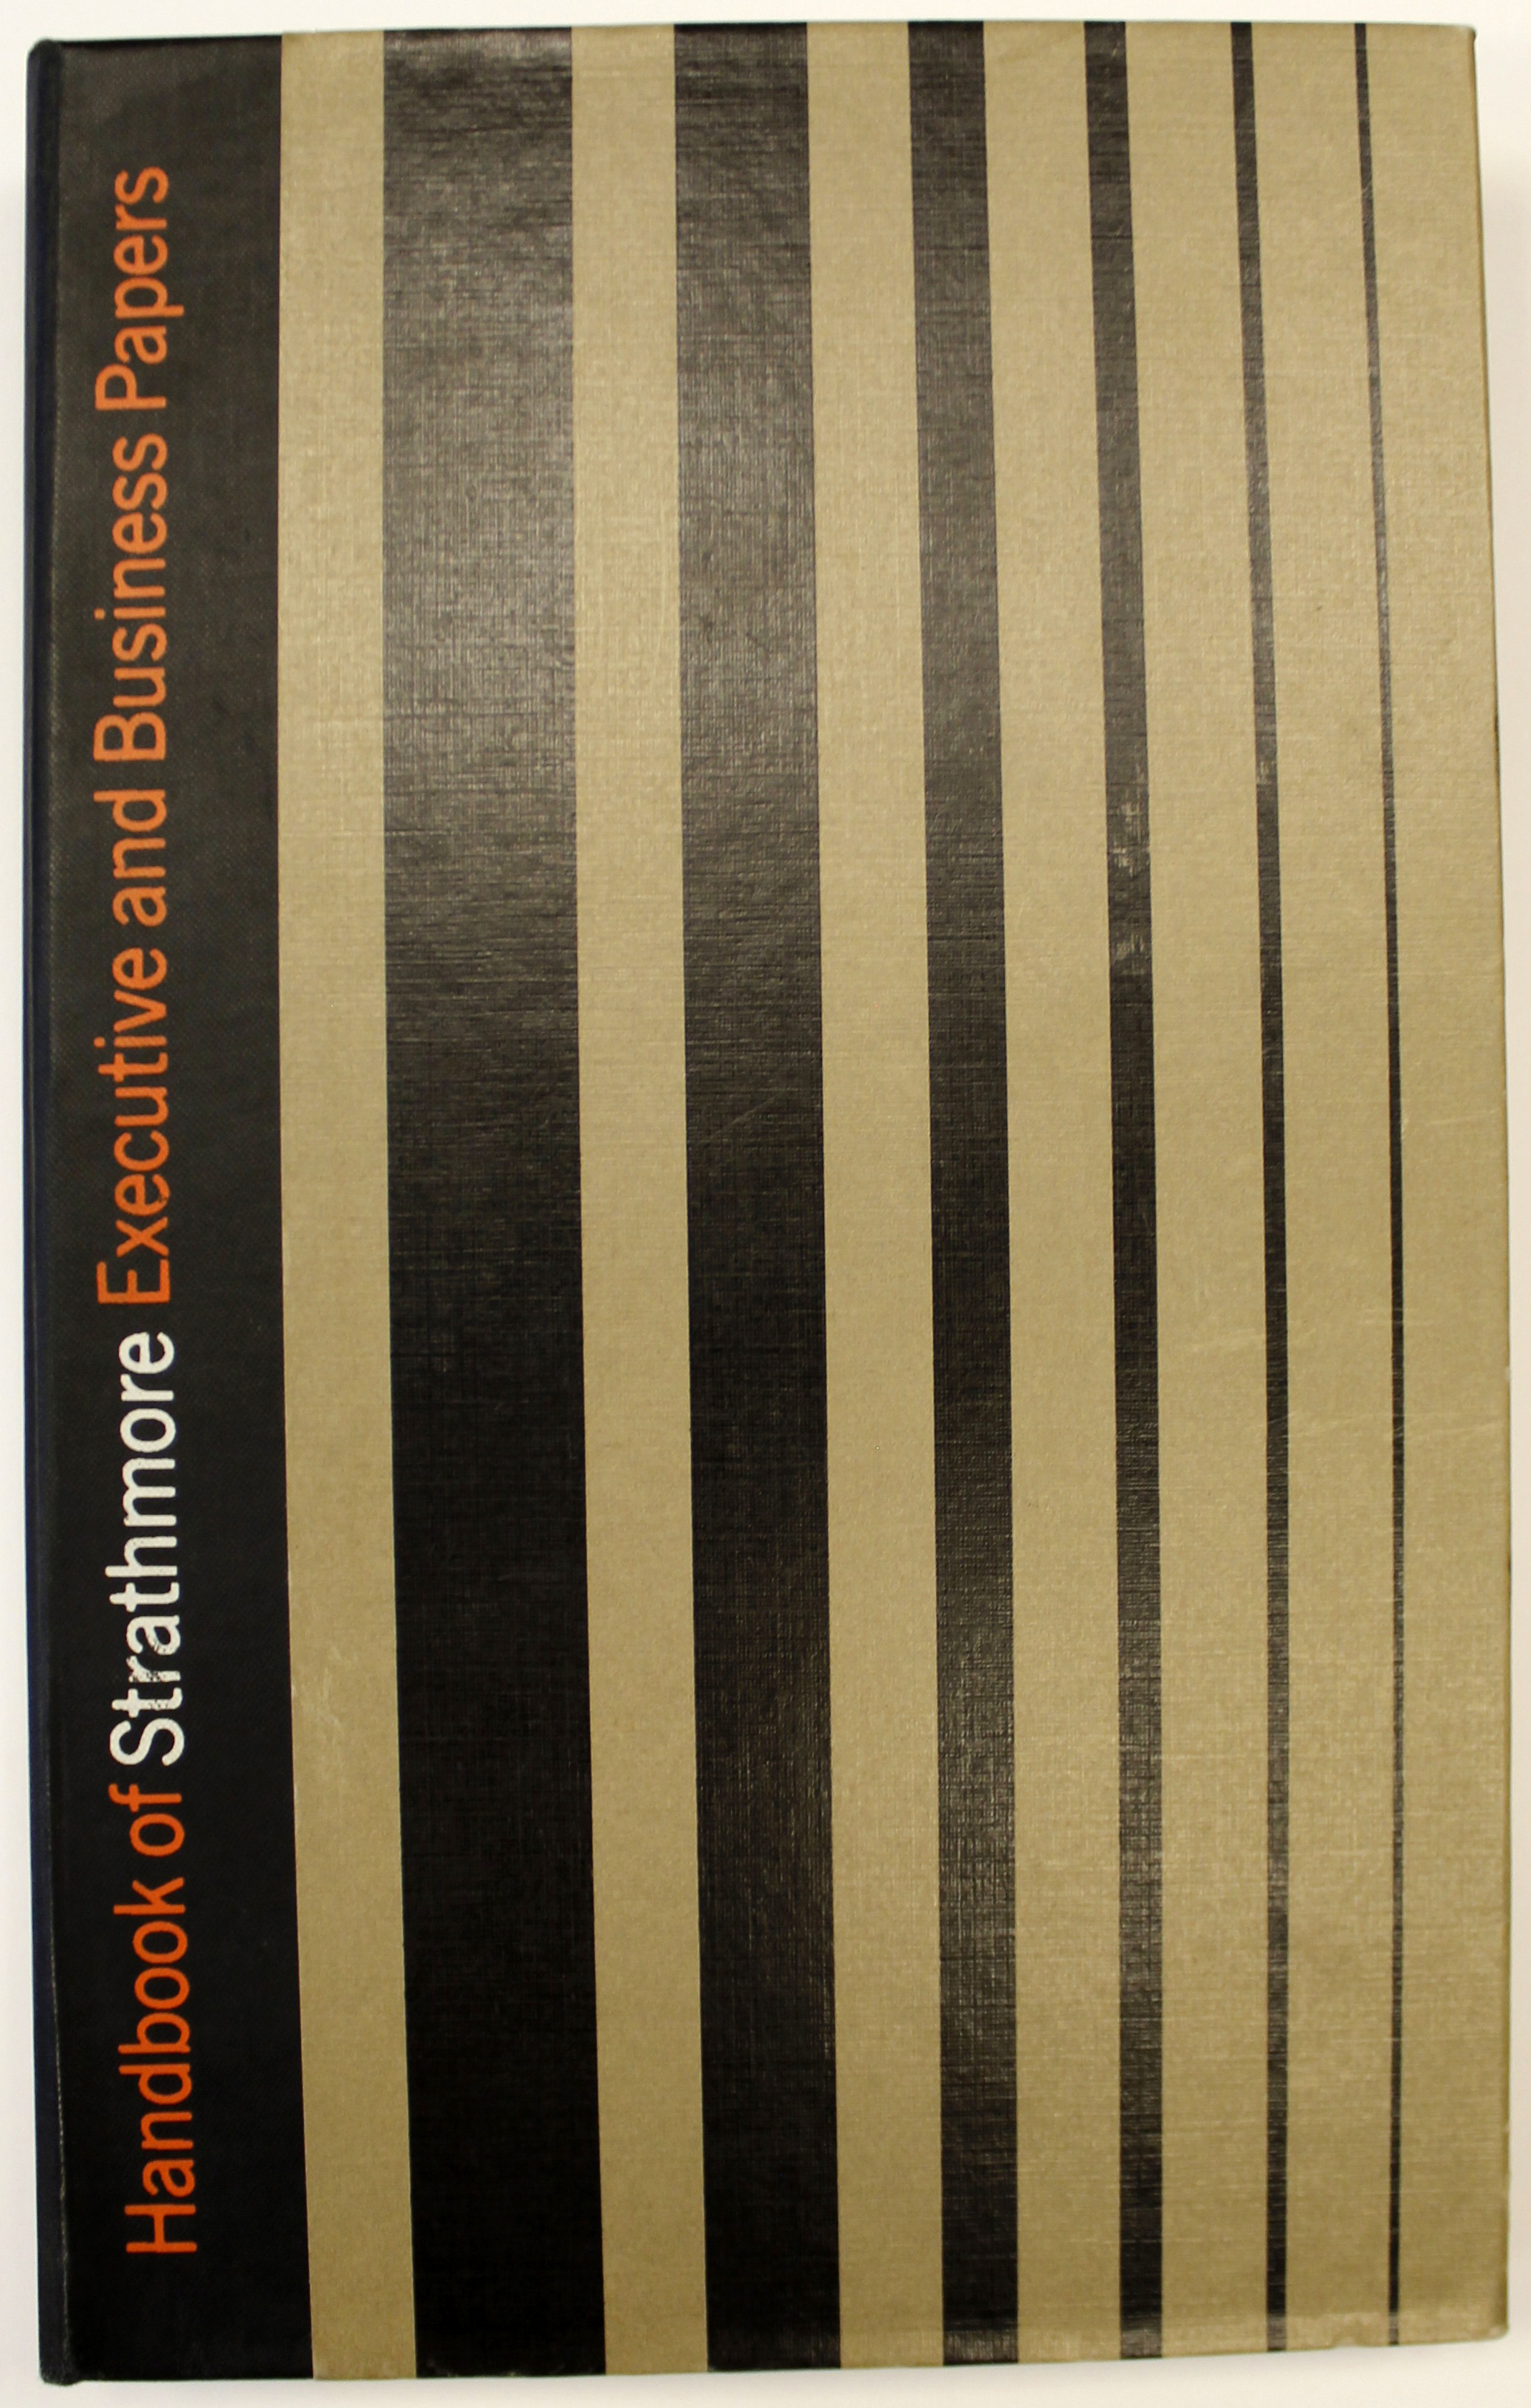 Cover of Handbook of Strathmore Executive and Business Papers (Strathmore Paper Co., 1965). Design by George Tscherny. Photograph by Vincent Giordano.